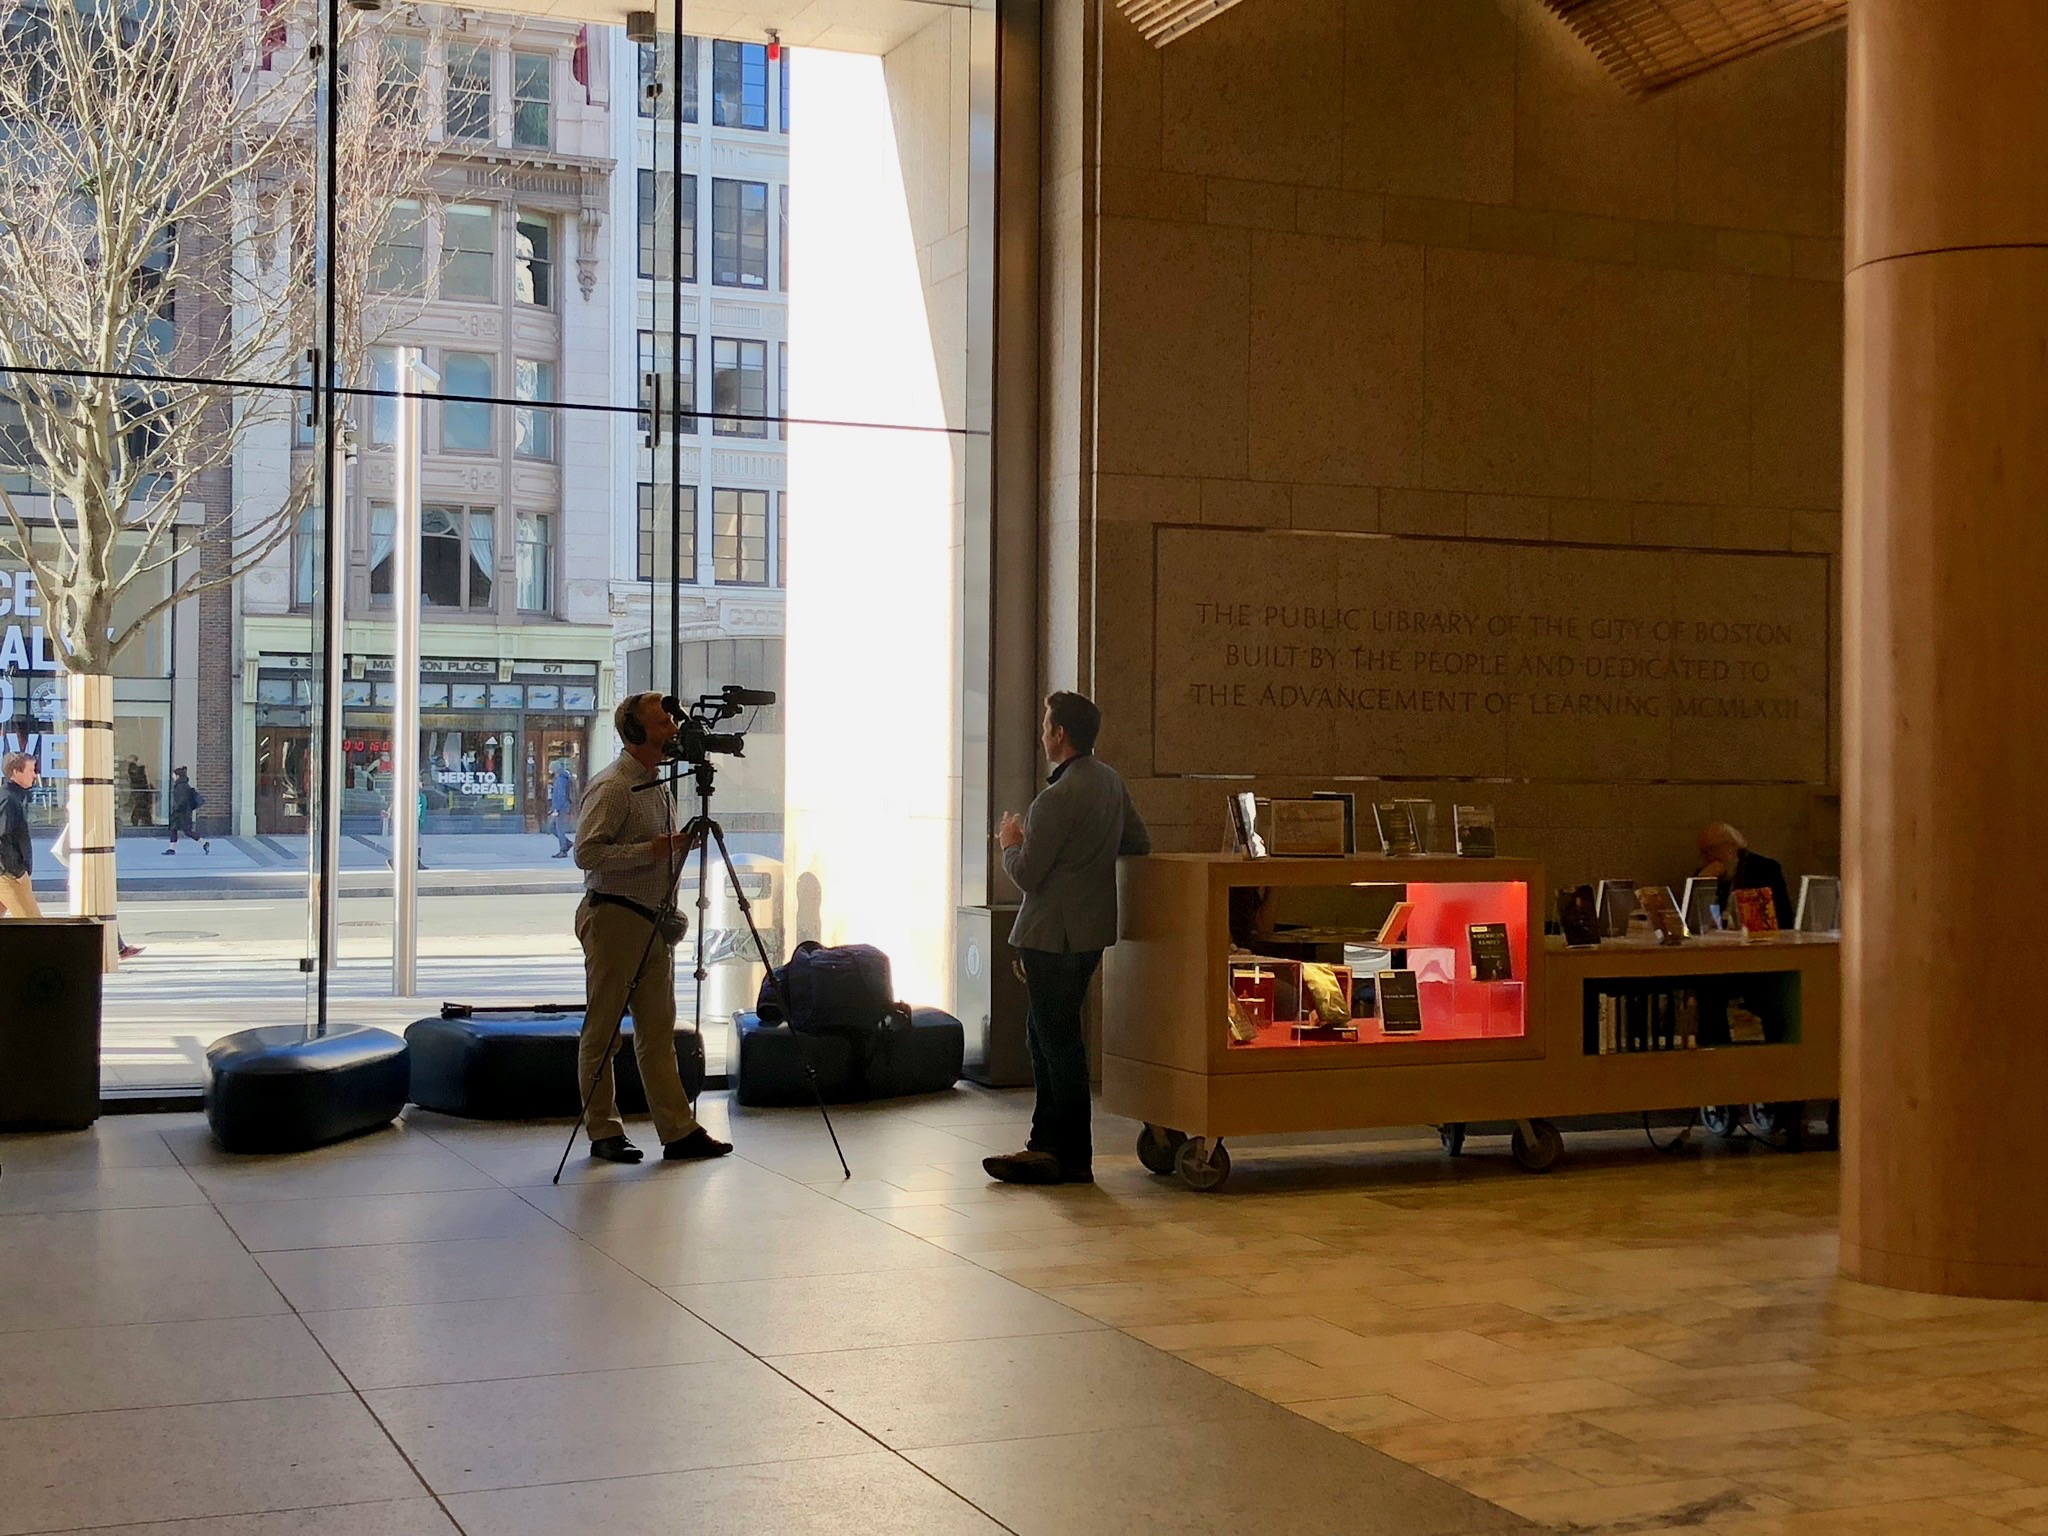 Speaking with a Today show producer in the beautiful BPL lobby on Boylston Street.